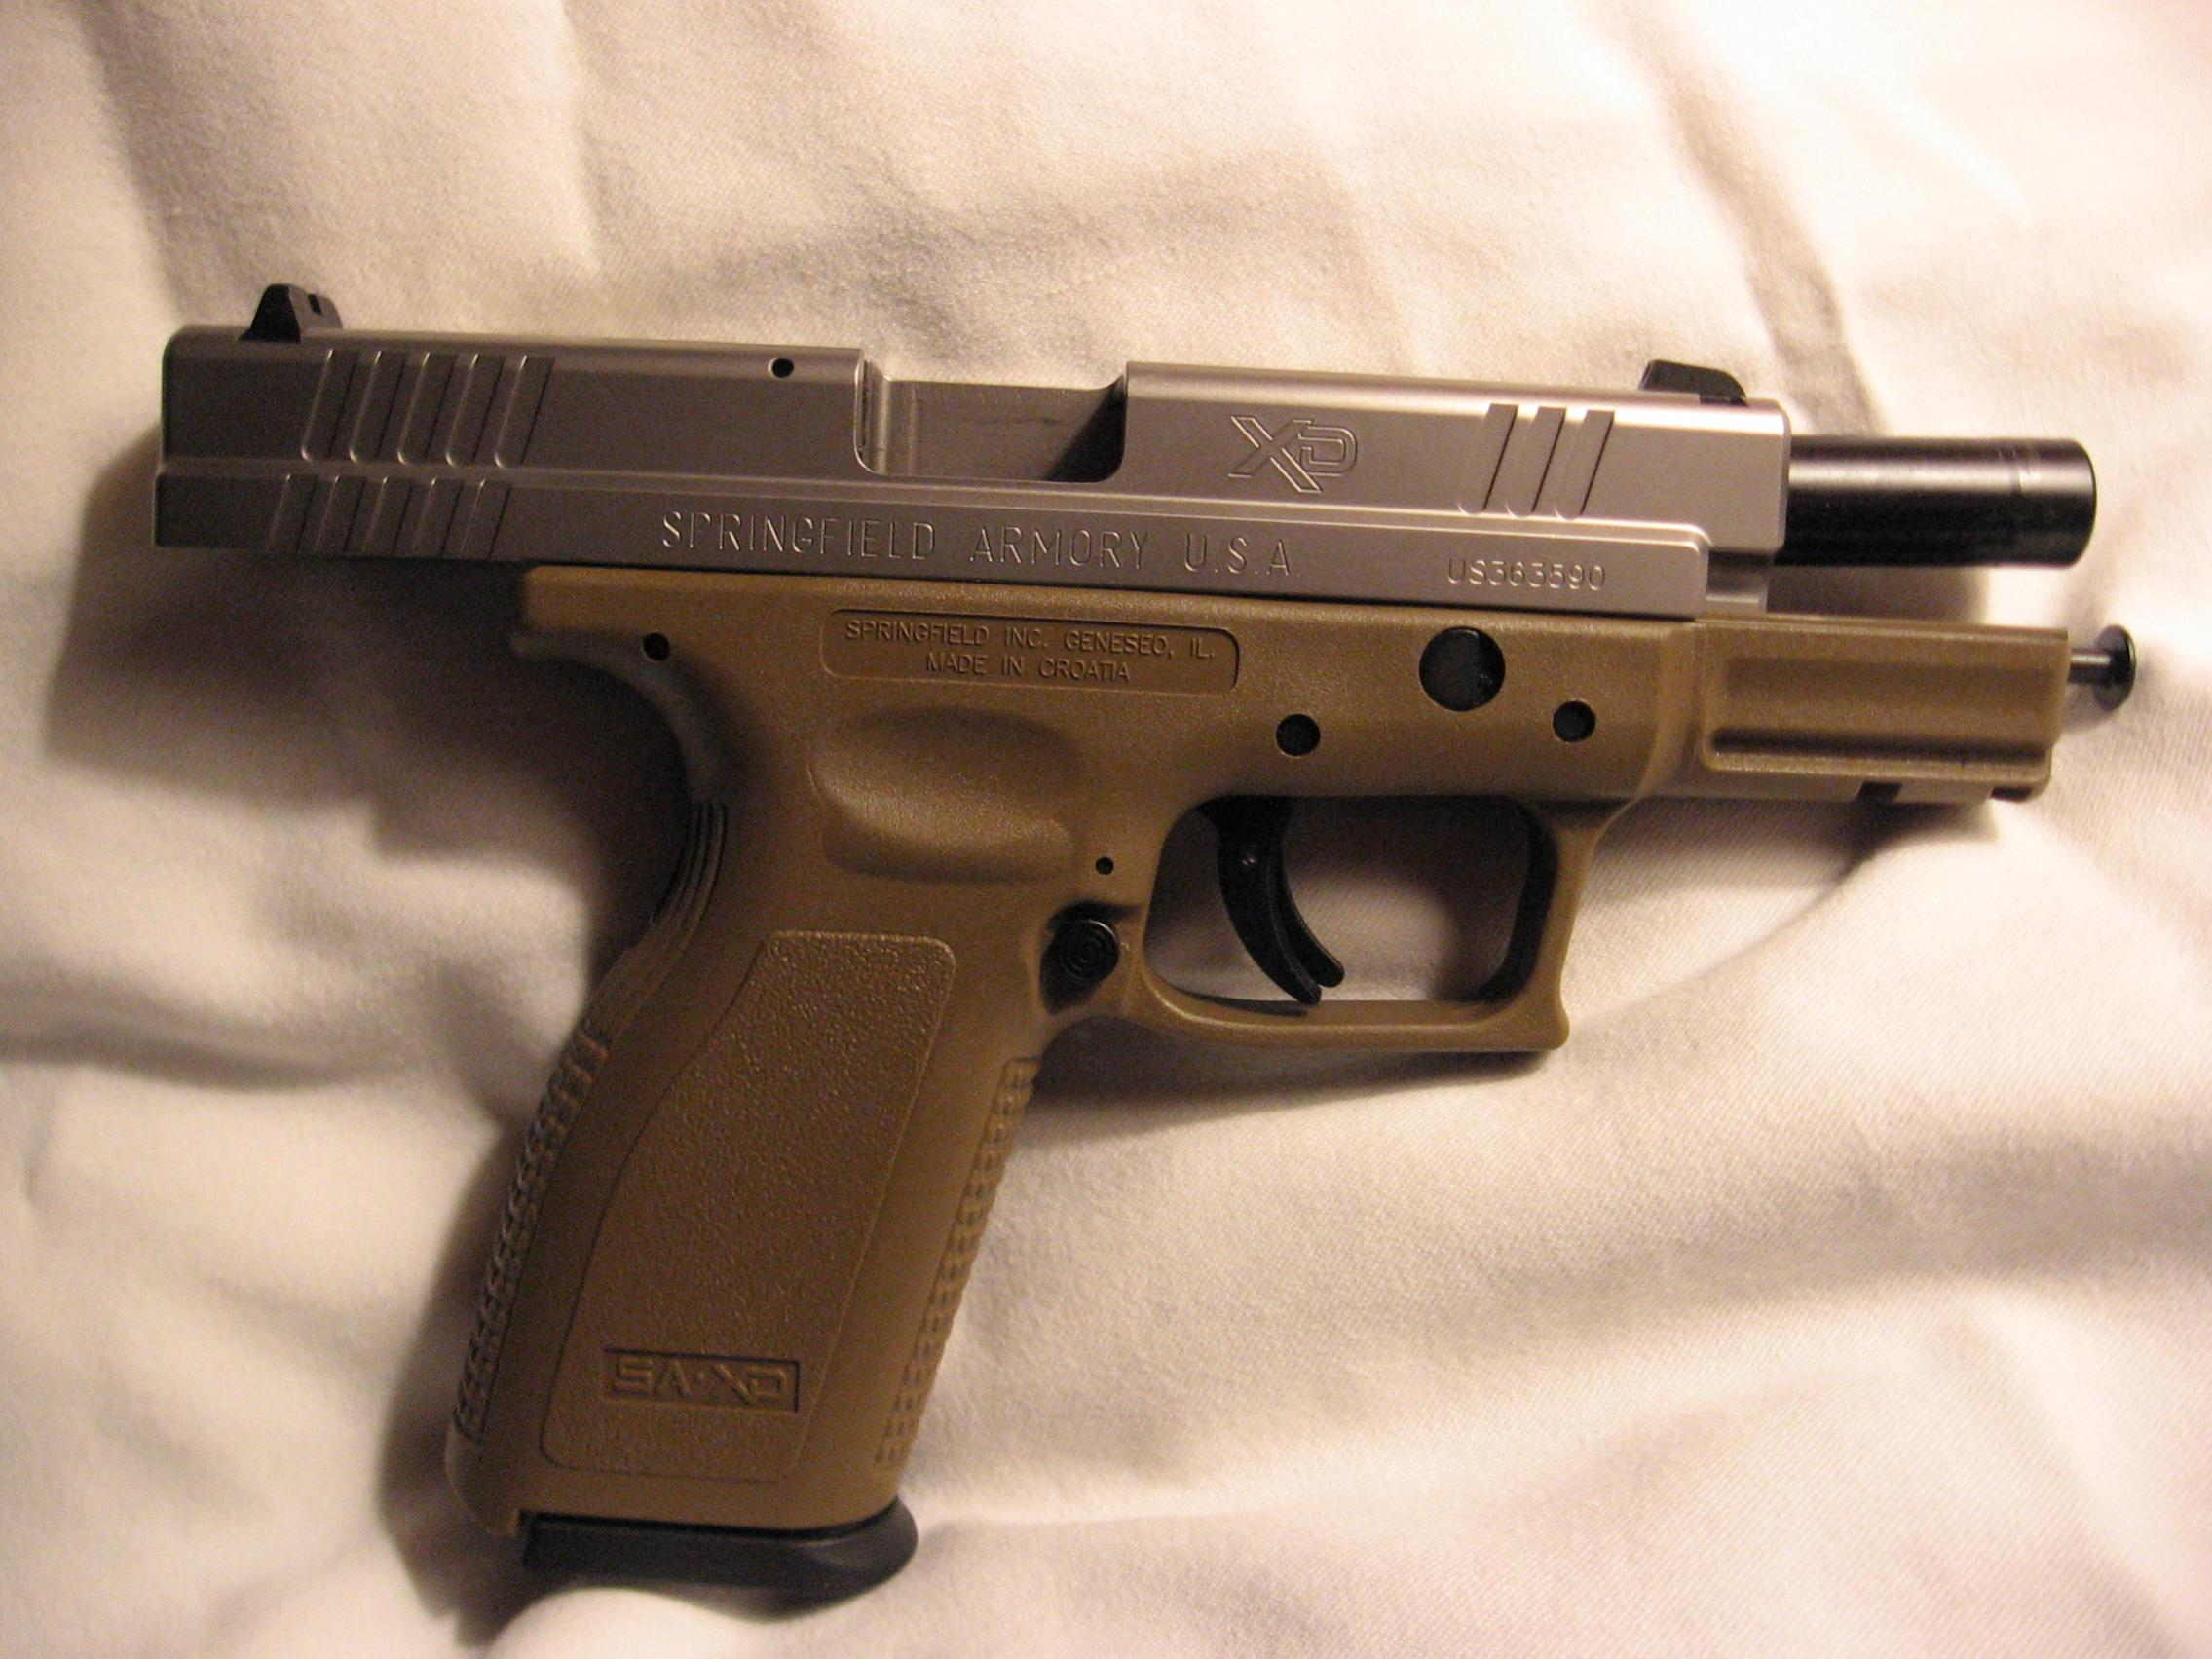 Bought a new XD today!-046.jpg